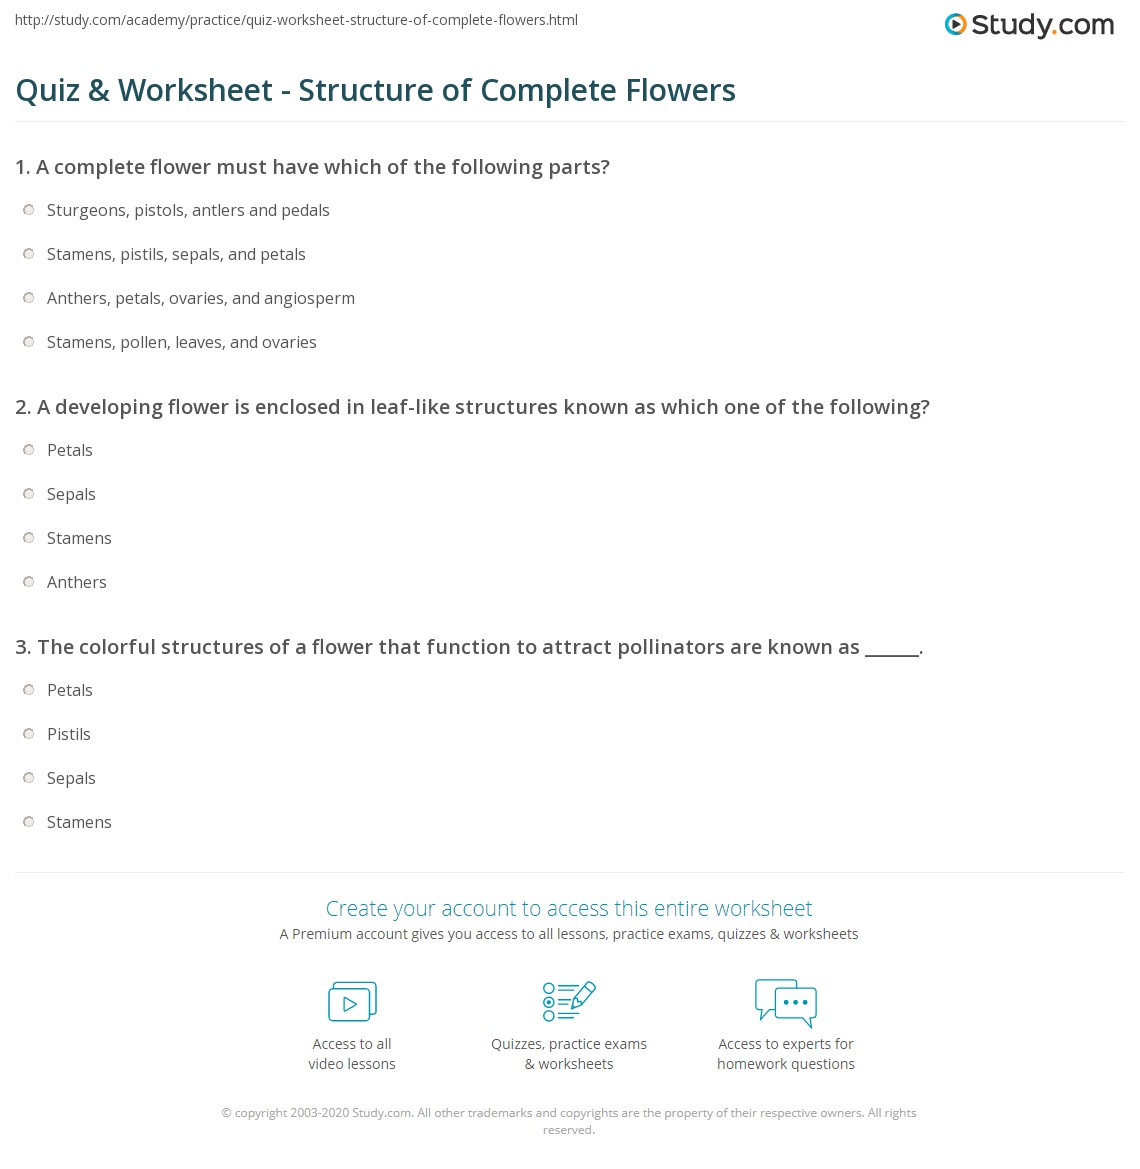 Quiz & Worksheet - Structure of Complete Flowers | Study.com